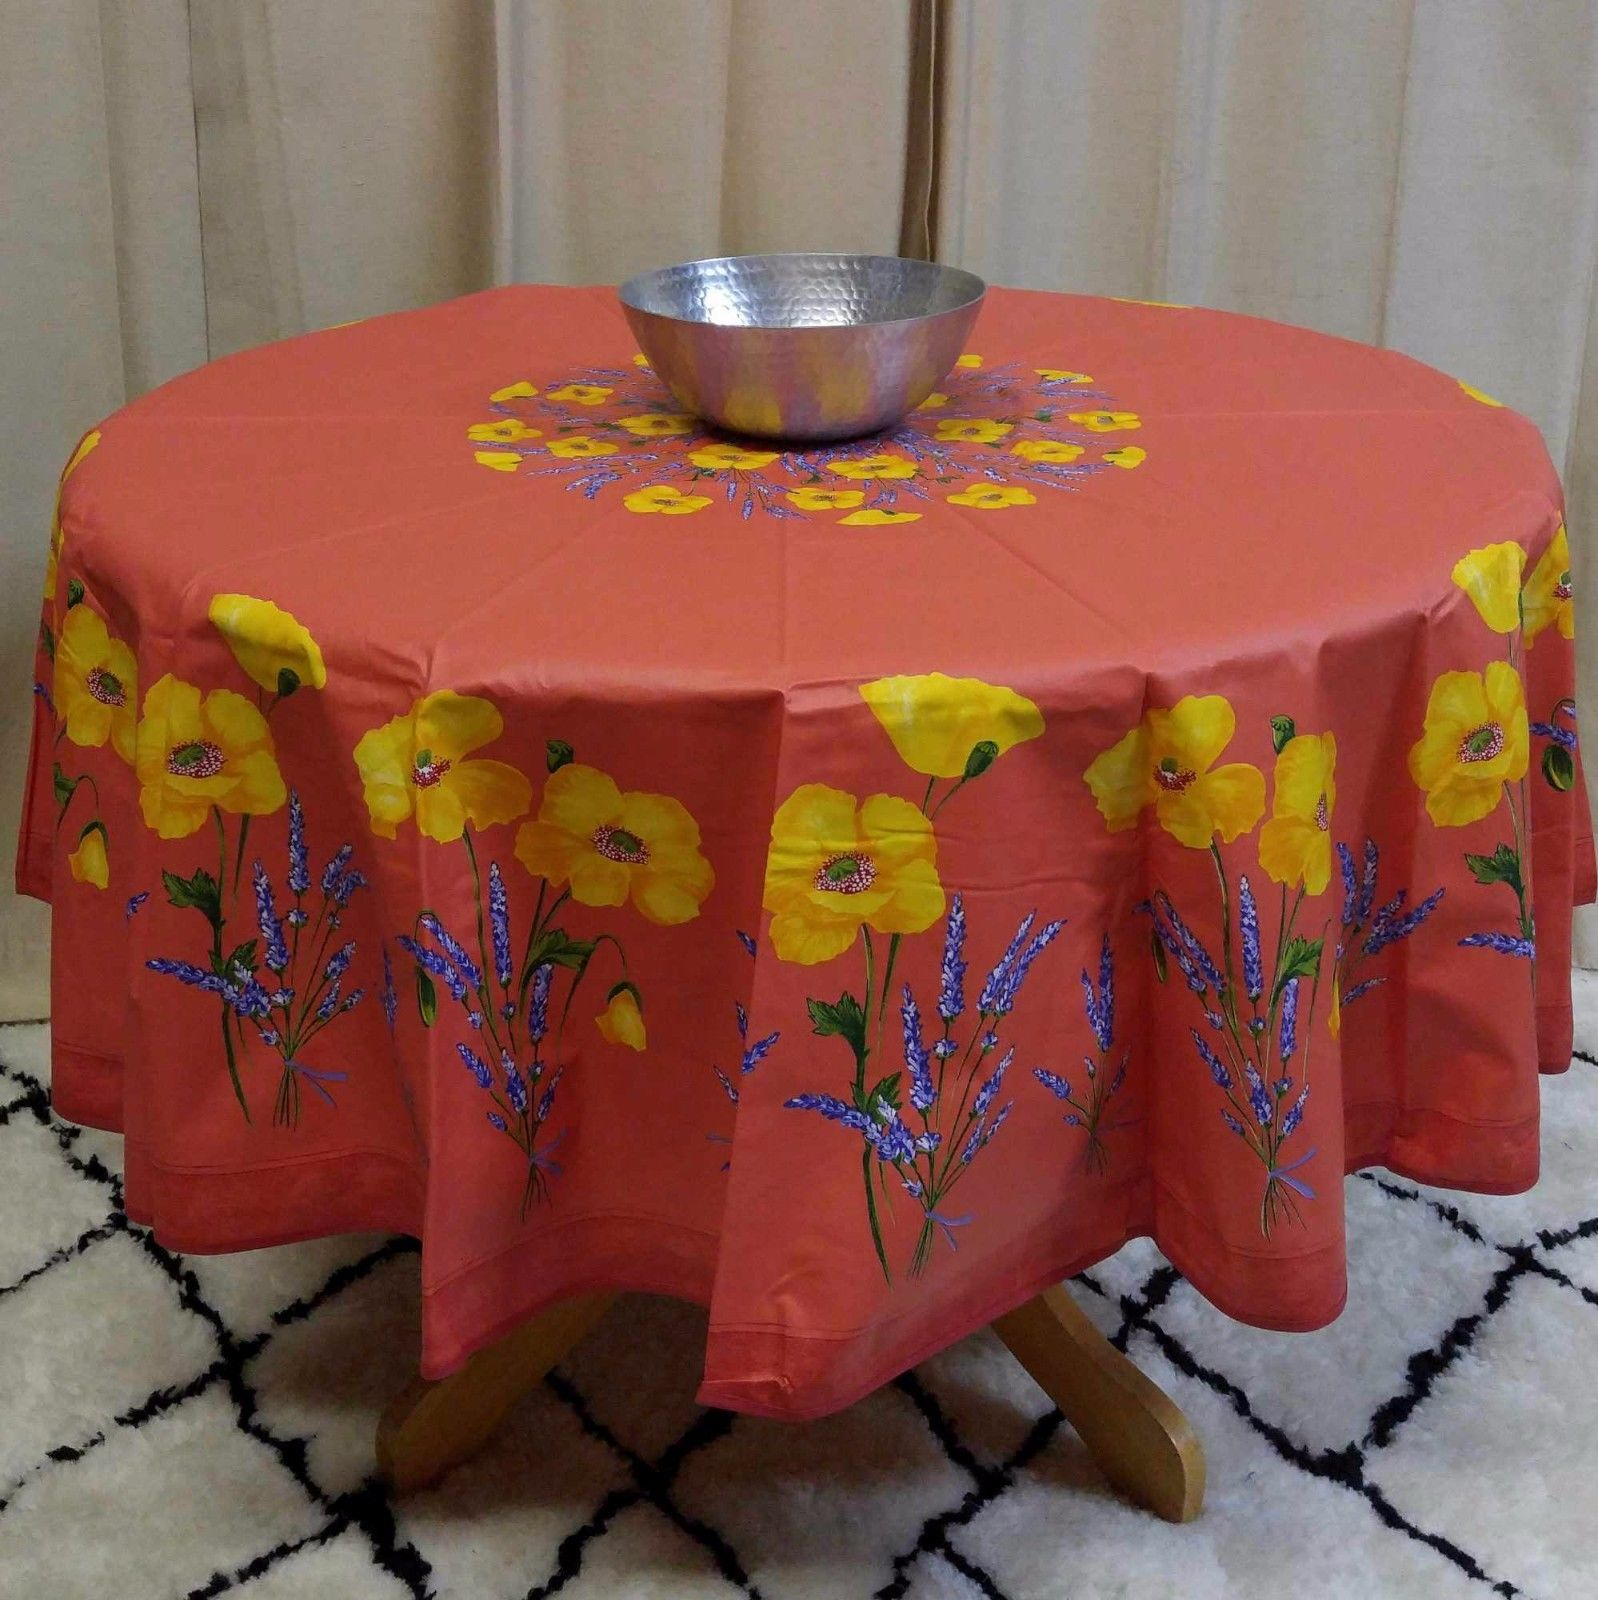 French Provencal Floral Poppy Tablecloth Round Acrylic Coated 100% Cotton  (71 Inches, Salmon Peach)